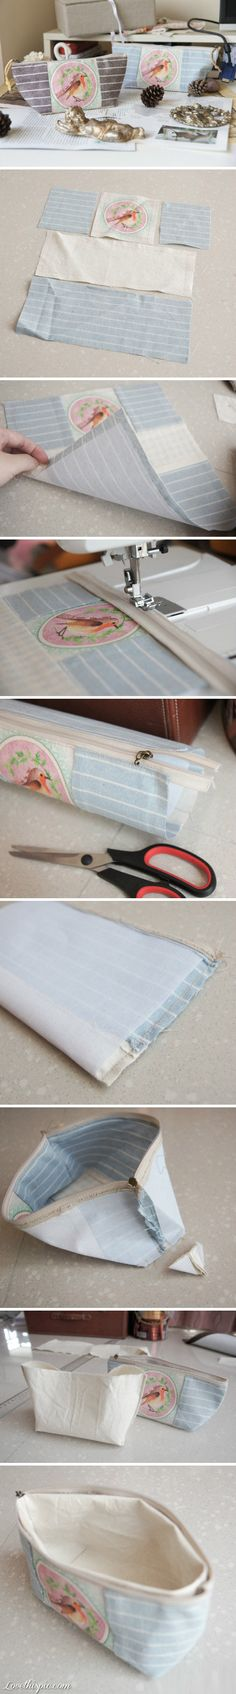 DIY Zipper Bag diy sew craft ……re pinned by Maurie Daboux ❤╰☆╮